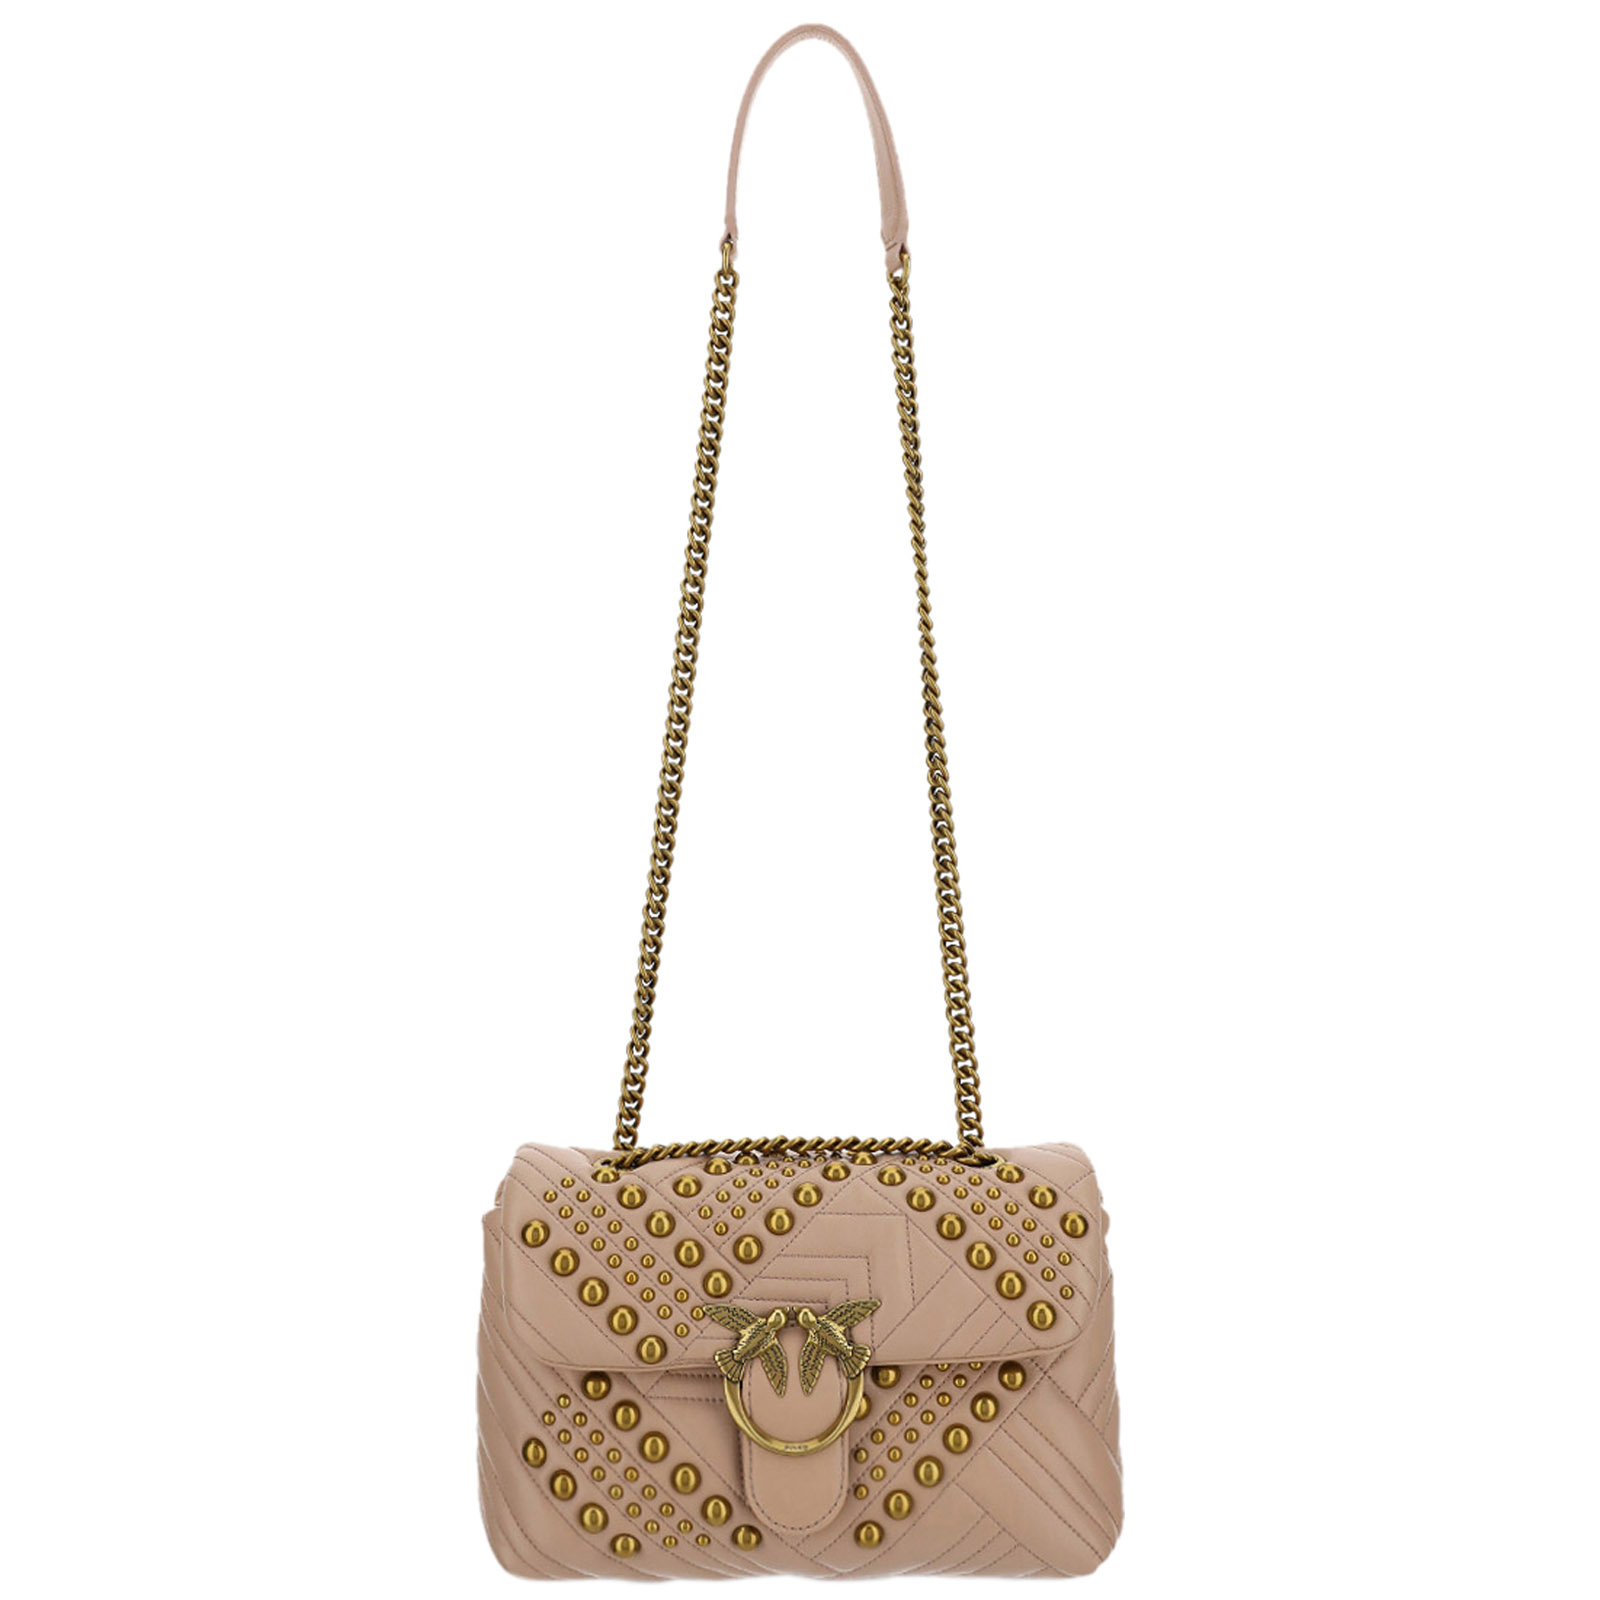 Pinko Leathers WOMEN'S LEATHER SHOULDER BAG LOVE CLASSIC